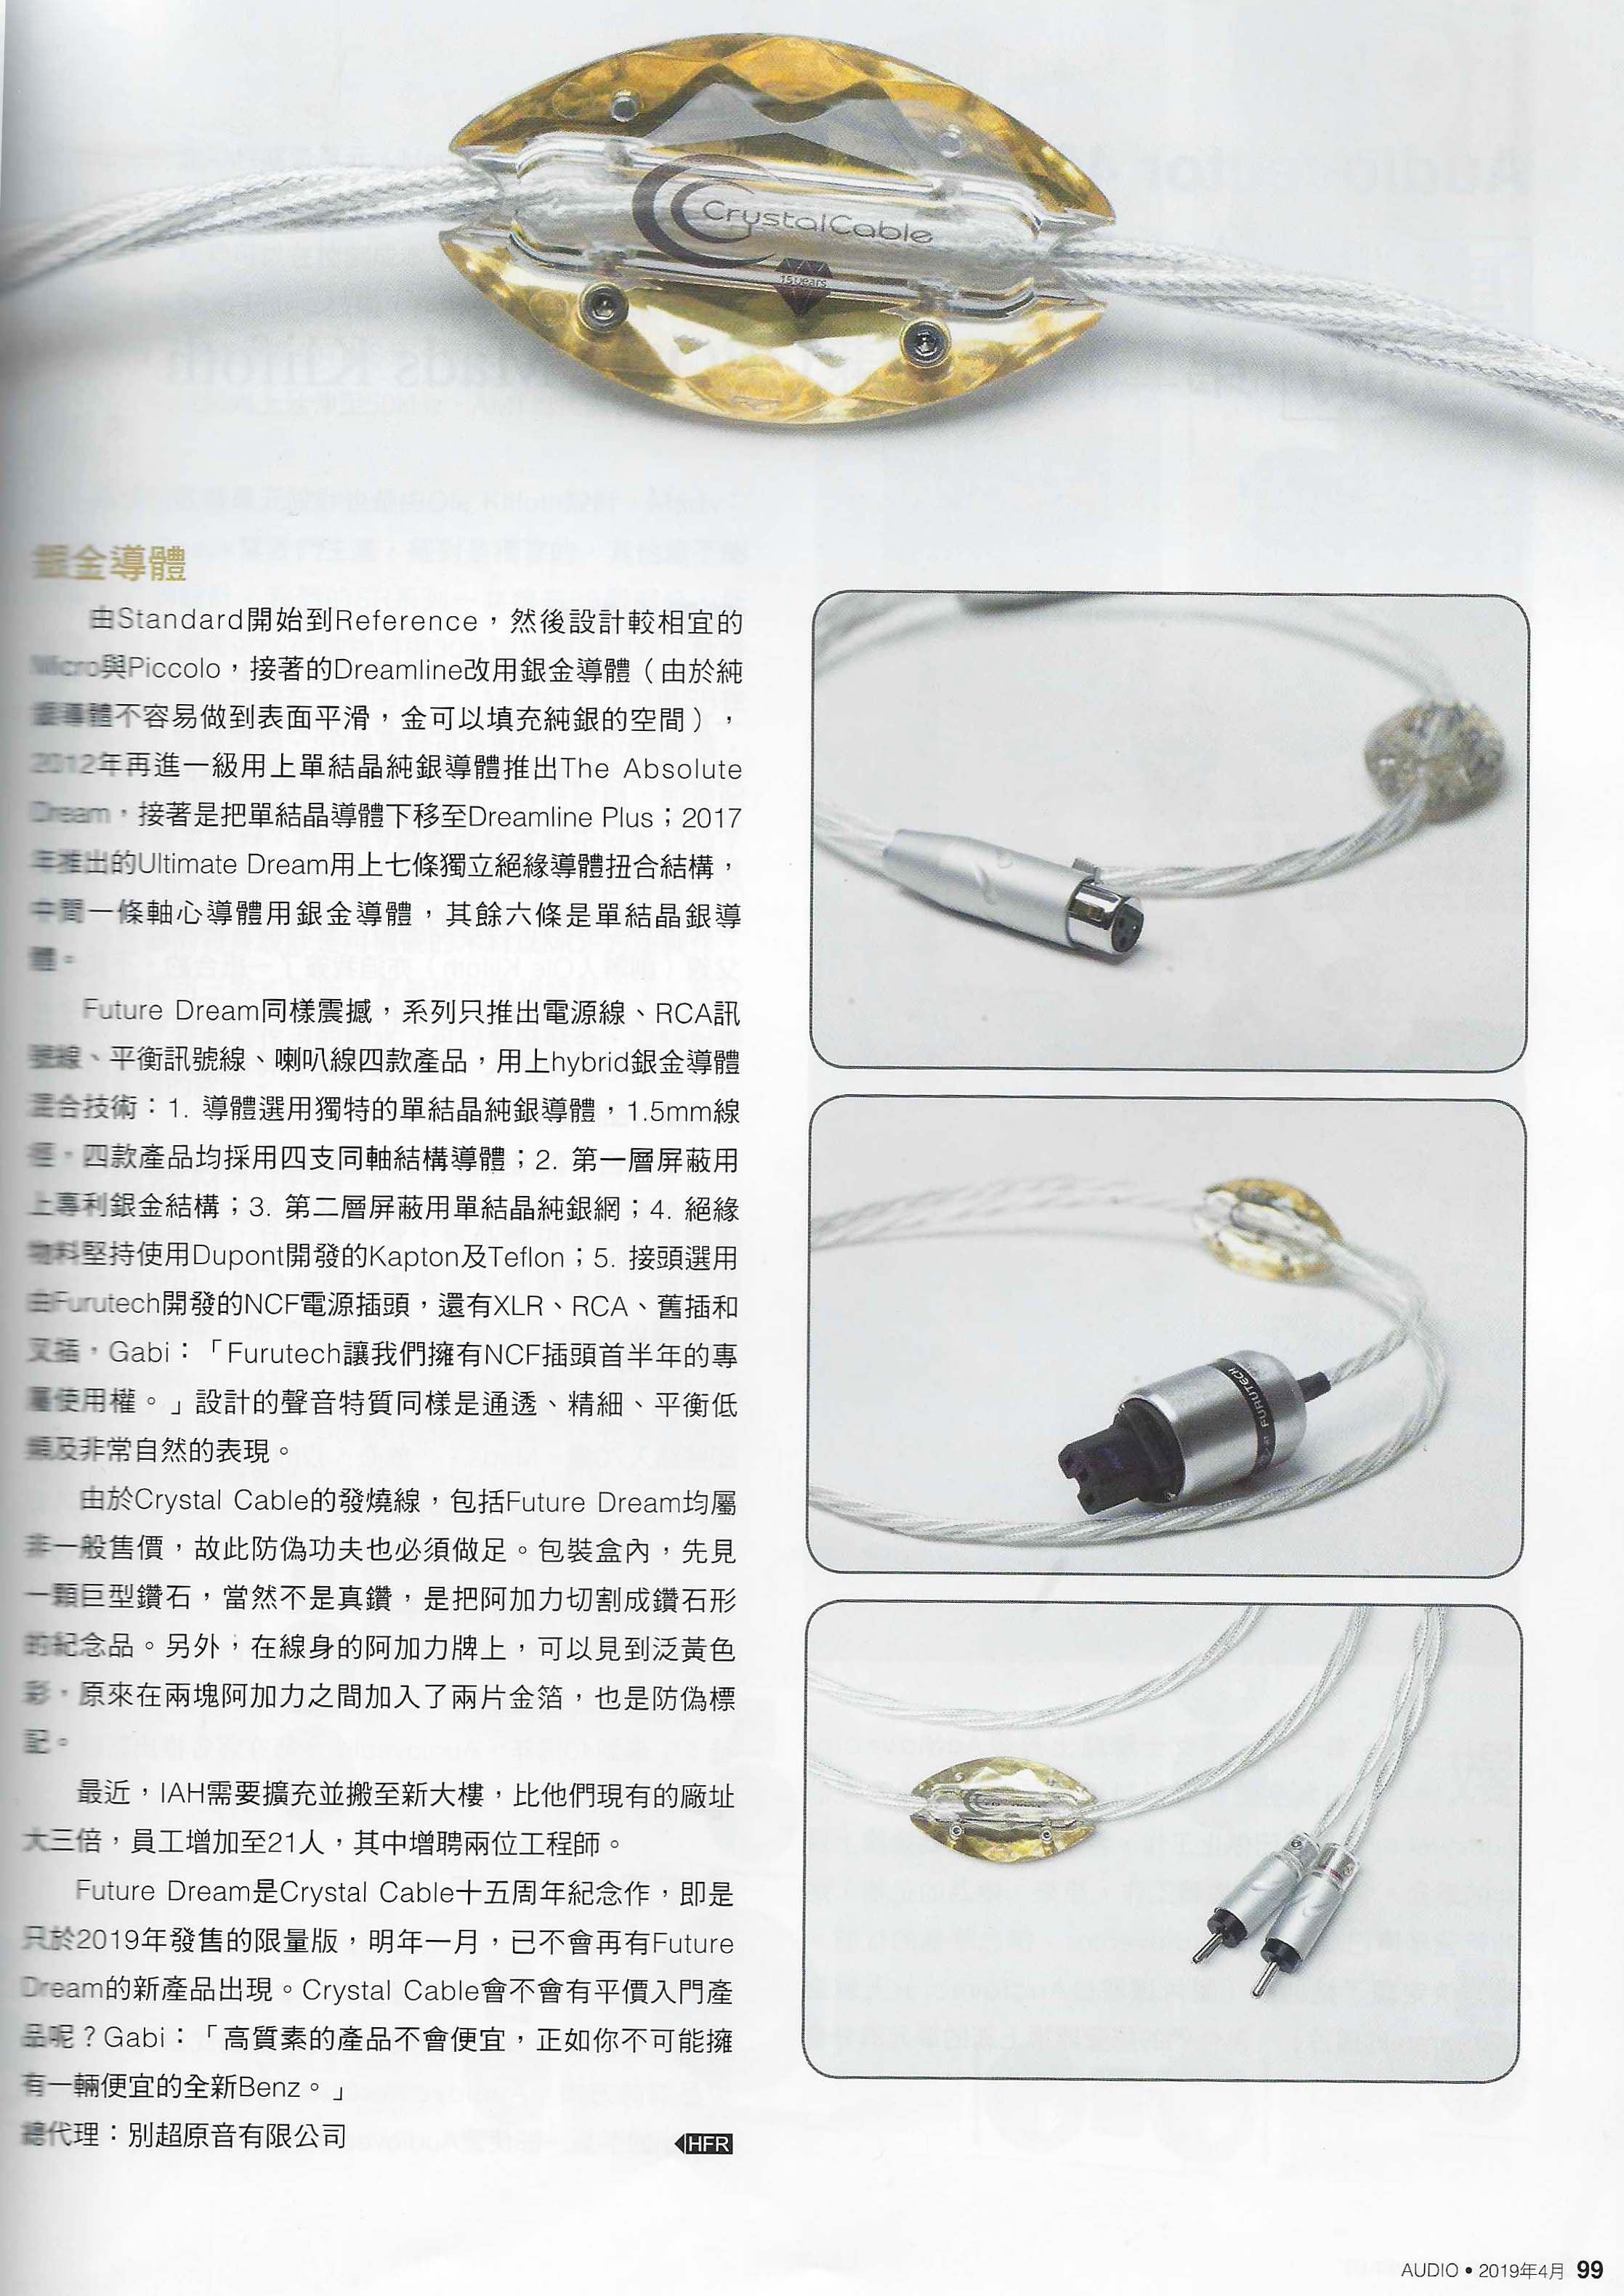 FUTURE DREAM IN HIFI REVIEW MAGAZINE - Crystal Cable